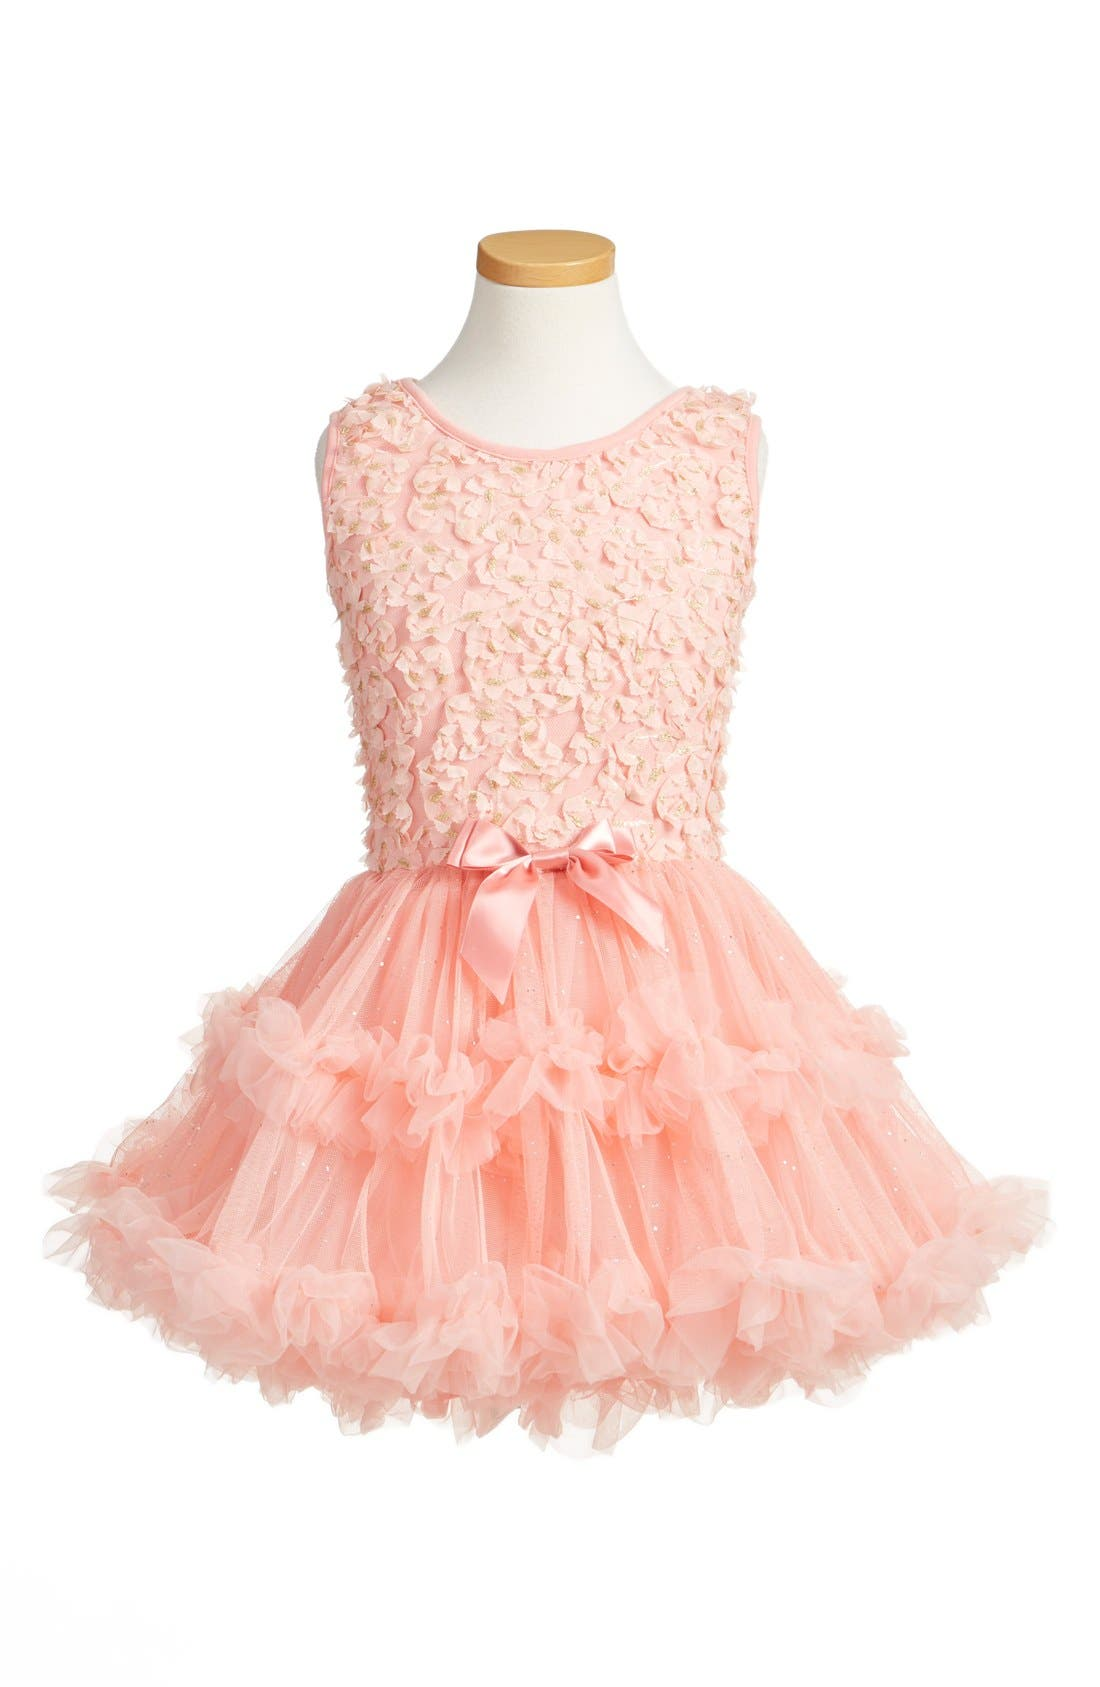 POPATU, Floral Appliqué Tutu Dress, Main thumbnail 1, color, PEACH